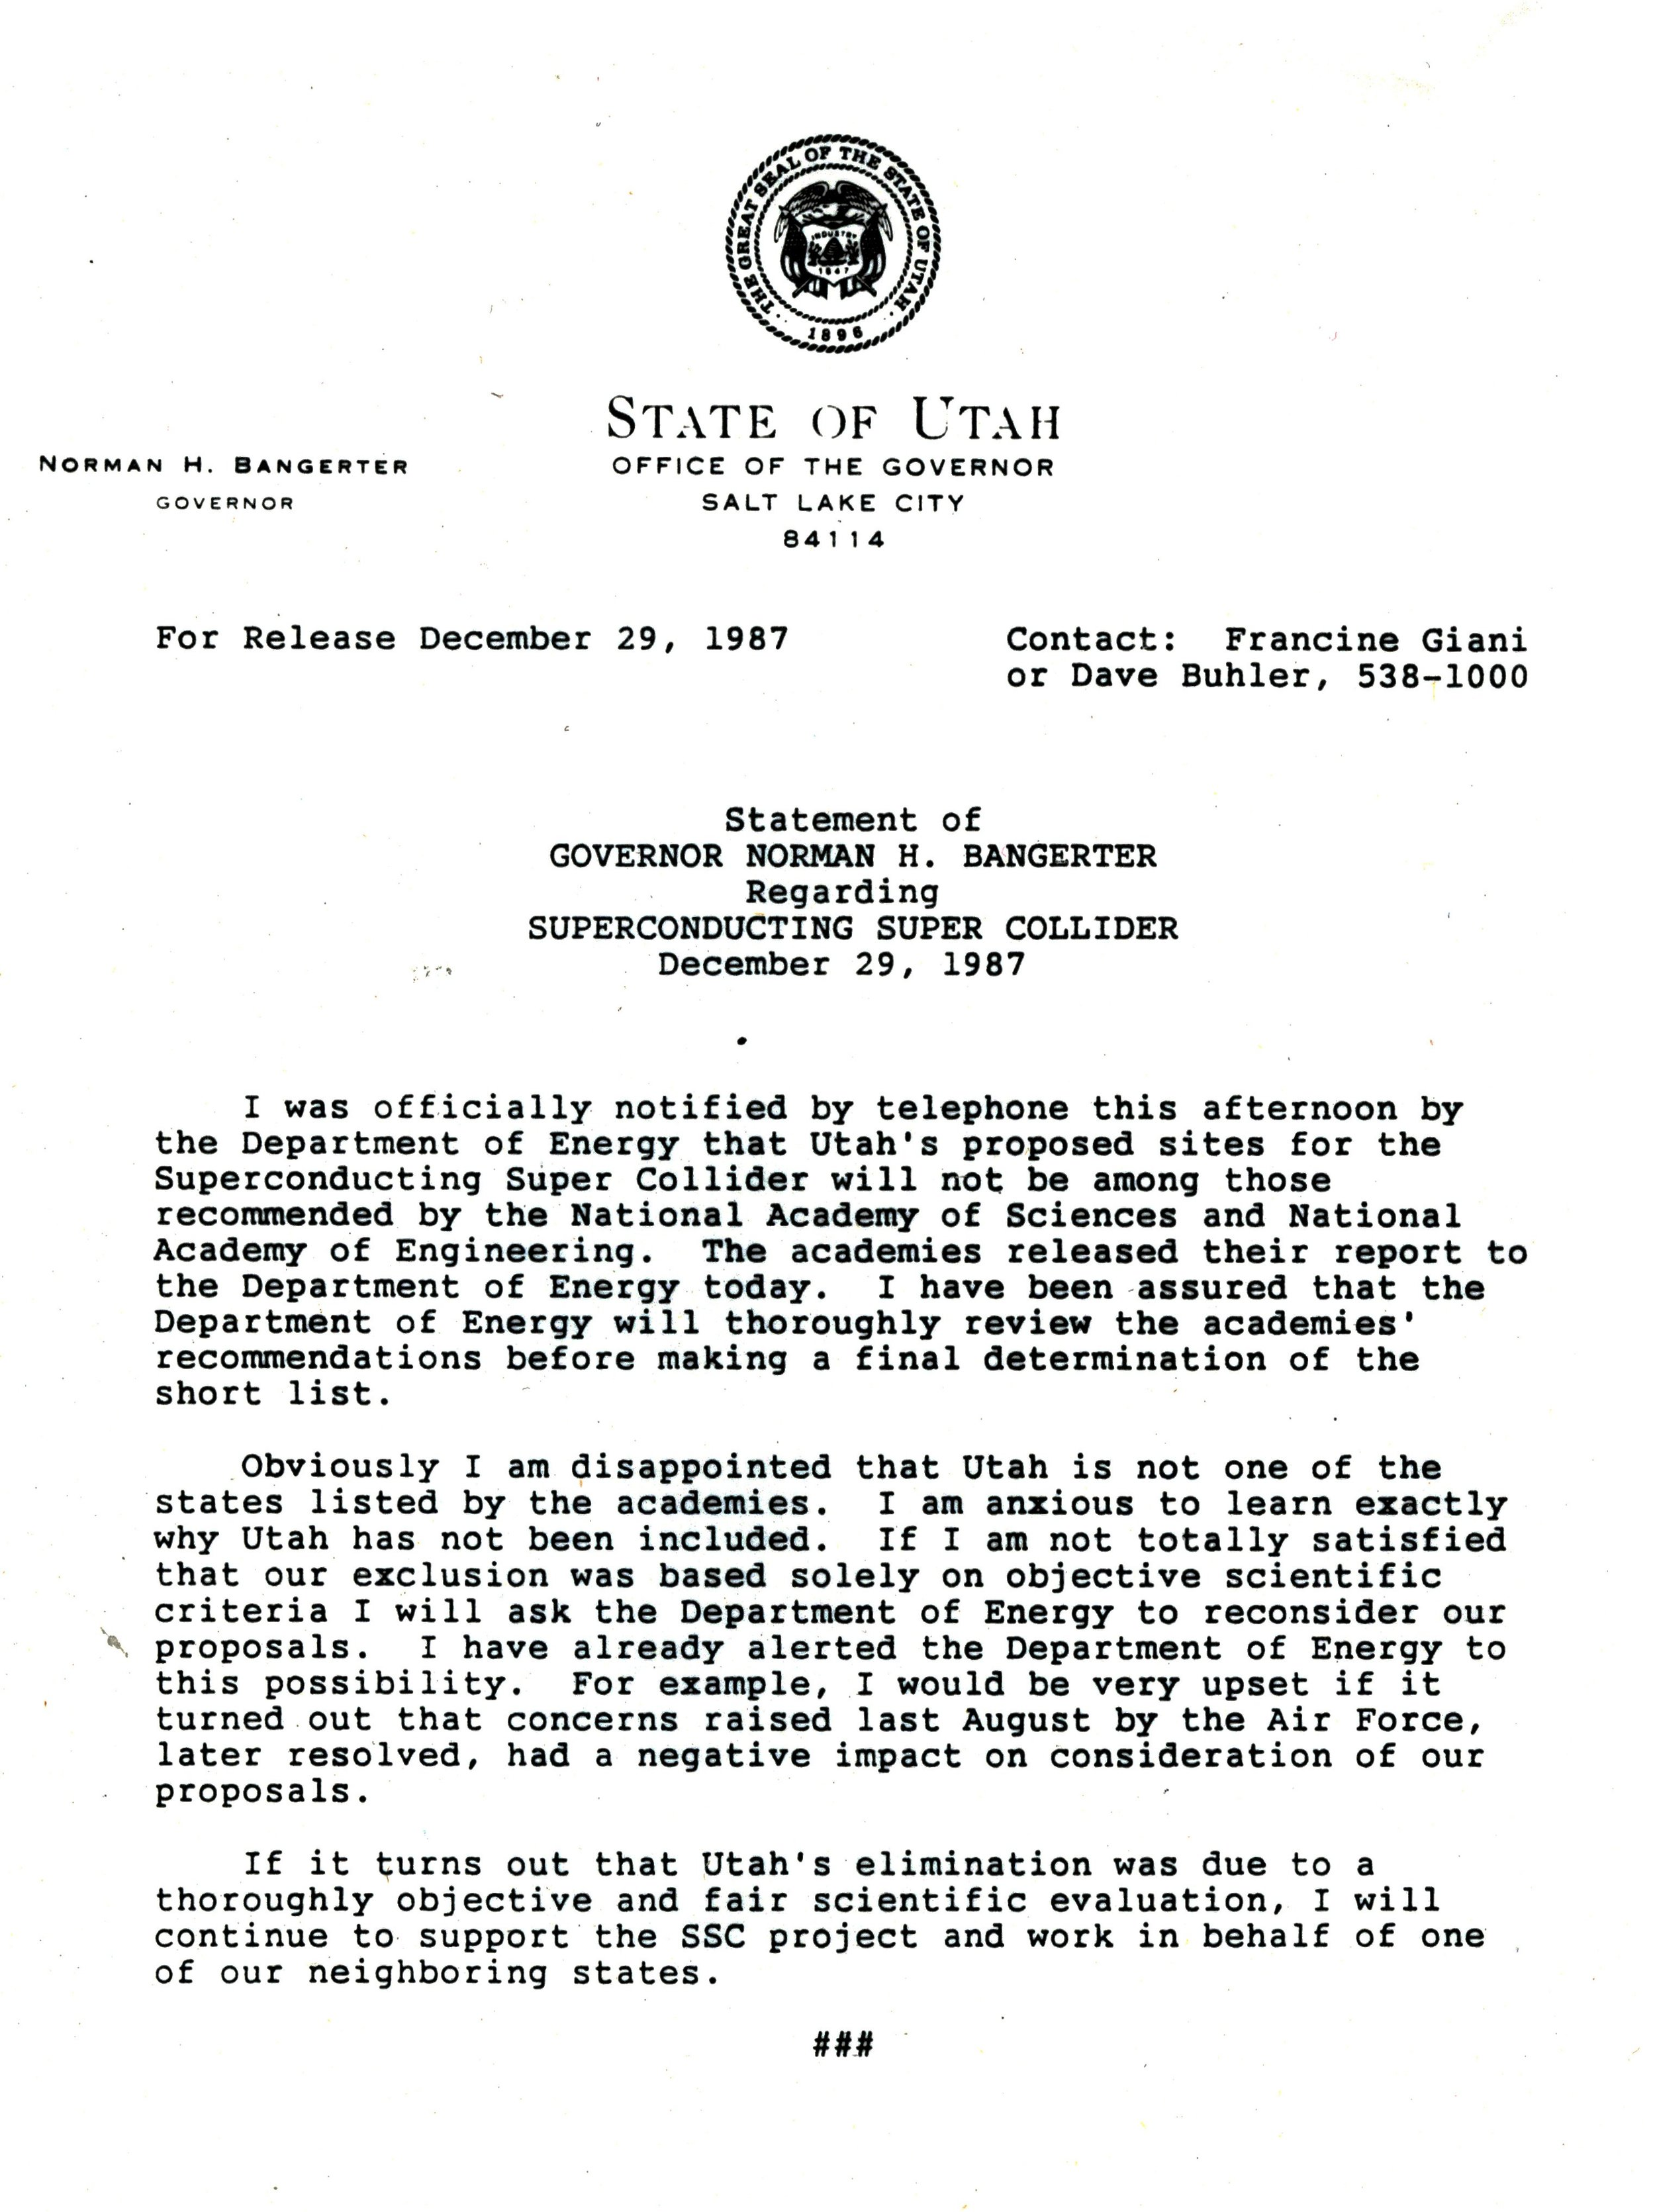 LETTER ON DOE'S DECISION TO NOT SELECT UTAH FOR THE SSC (SERIES 10263). PHOTO COURTESY OF THE UTAH STATE ARCHIVES AND RECORDS SERVICE.